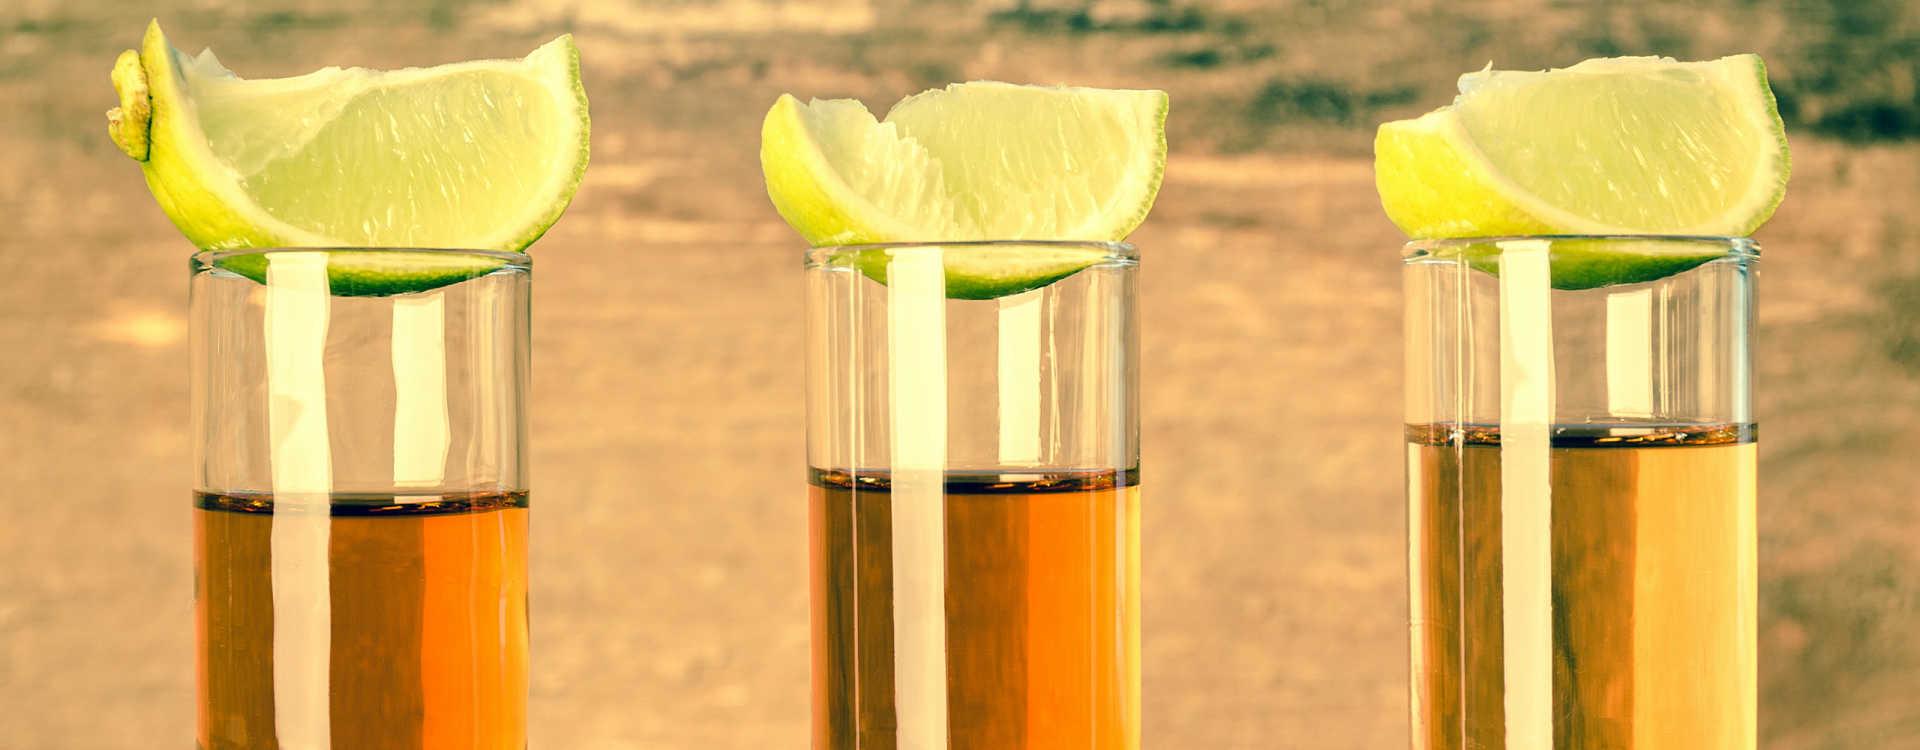 Image for Tequila Anejo content section